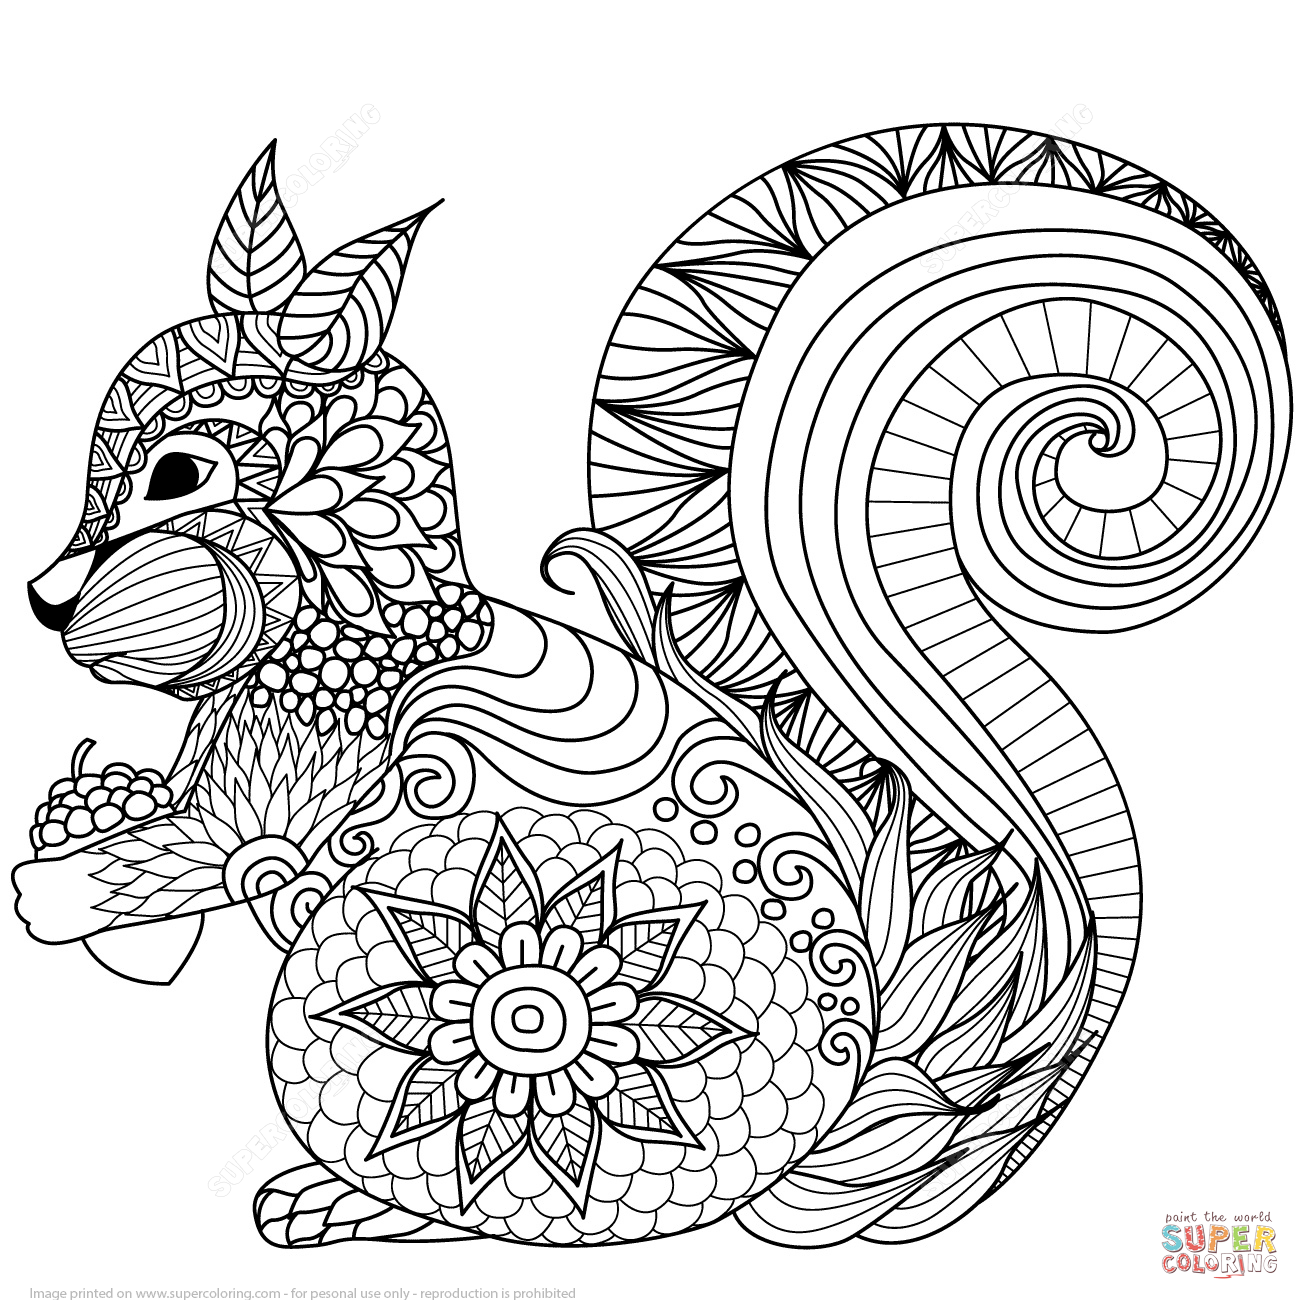 colouring pages zentangle zentangle butterfly coloring page free printable zentangle colouring pages